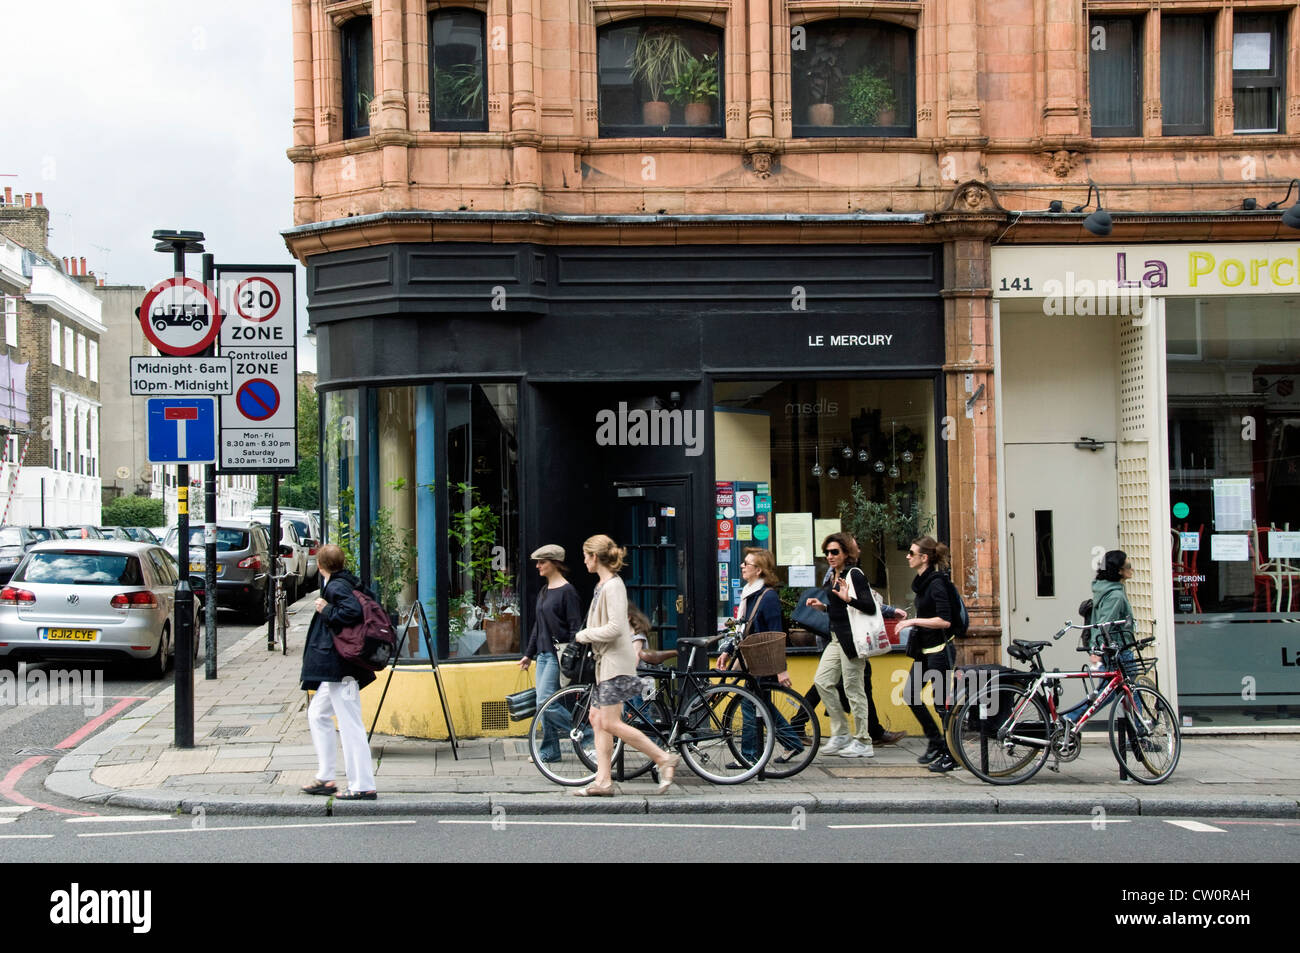 Busy street corner in front of Le Mercury resturant in Upper Street with people passing, Islington London England - Stock Image